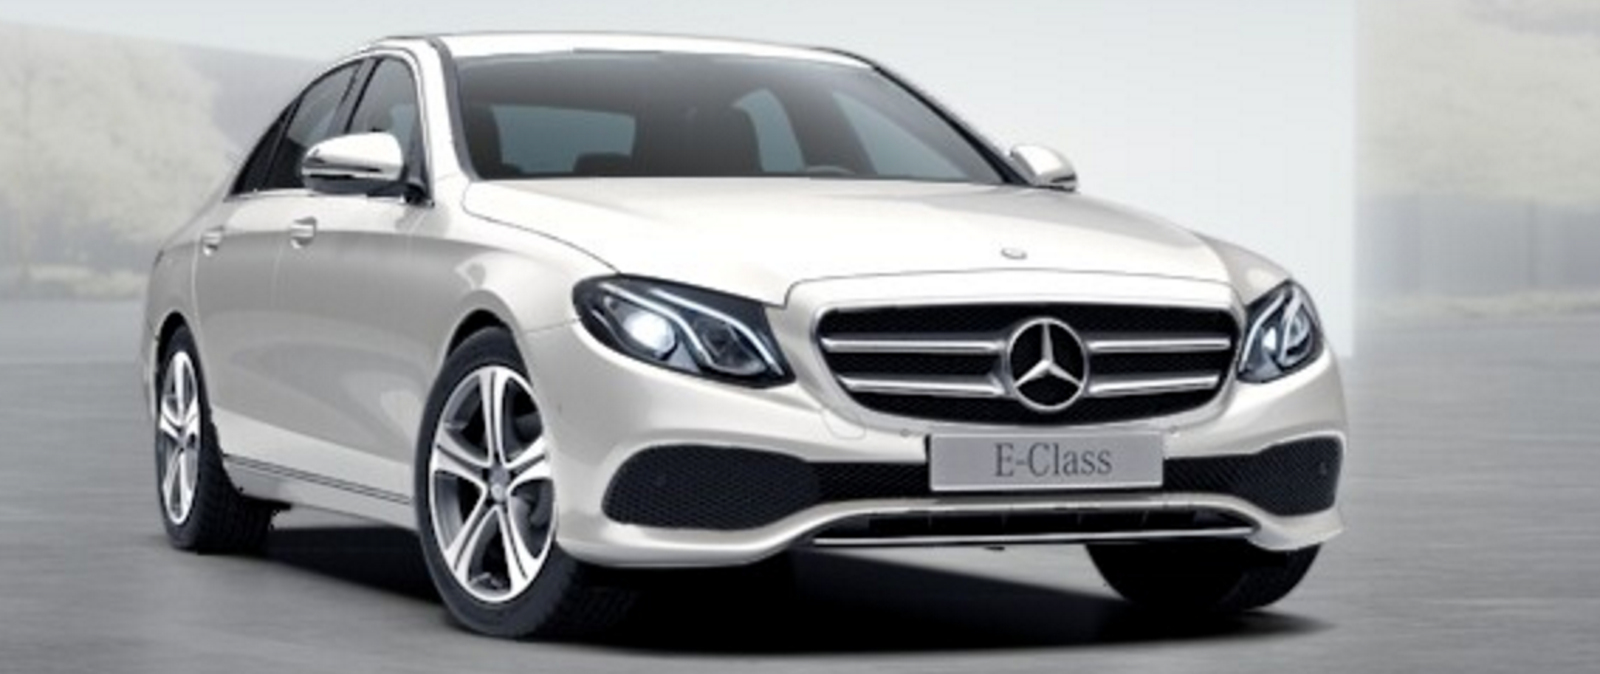 Mercedes e class colours guide and prices carwow for Mercedes benz polar white paint